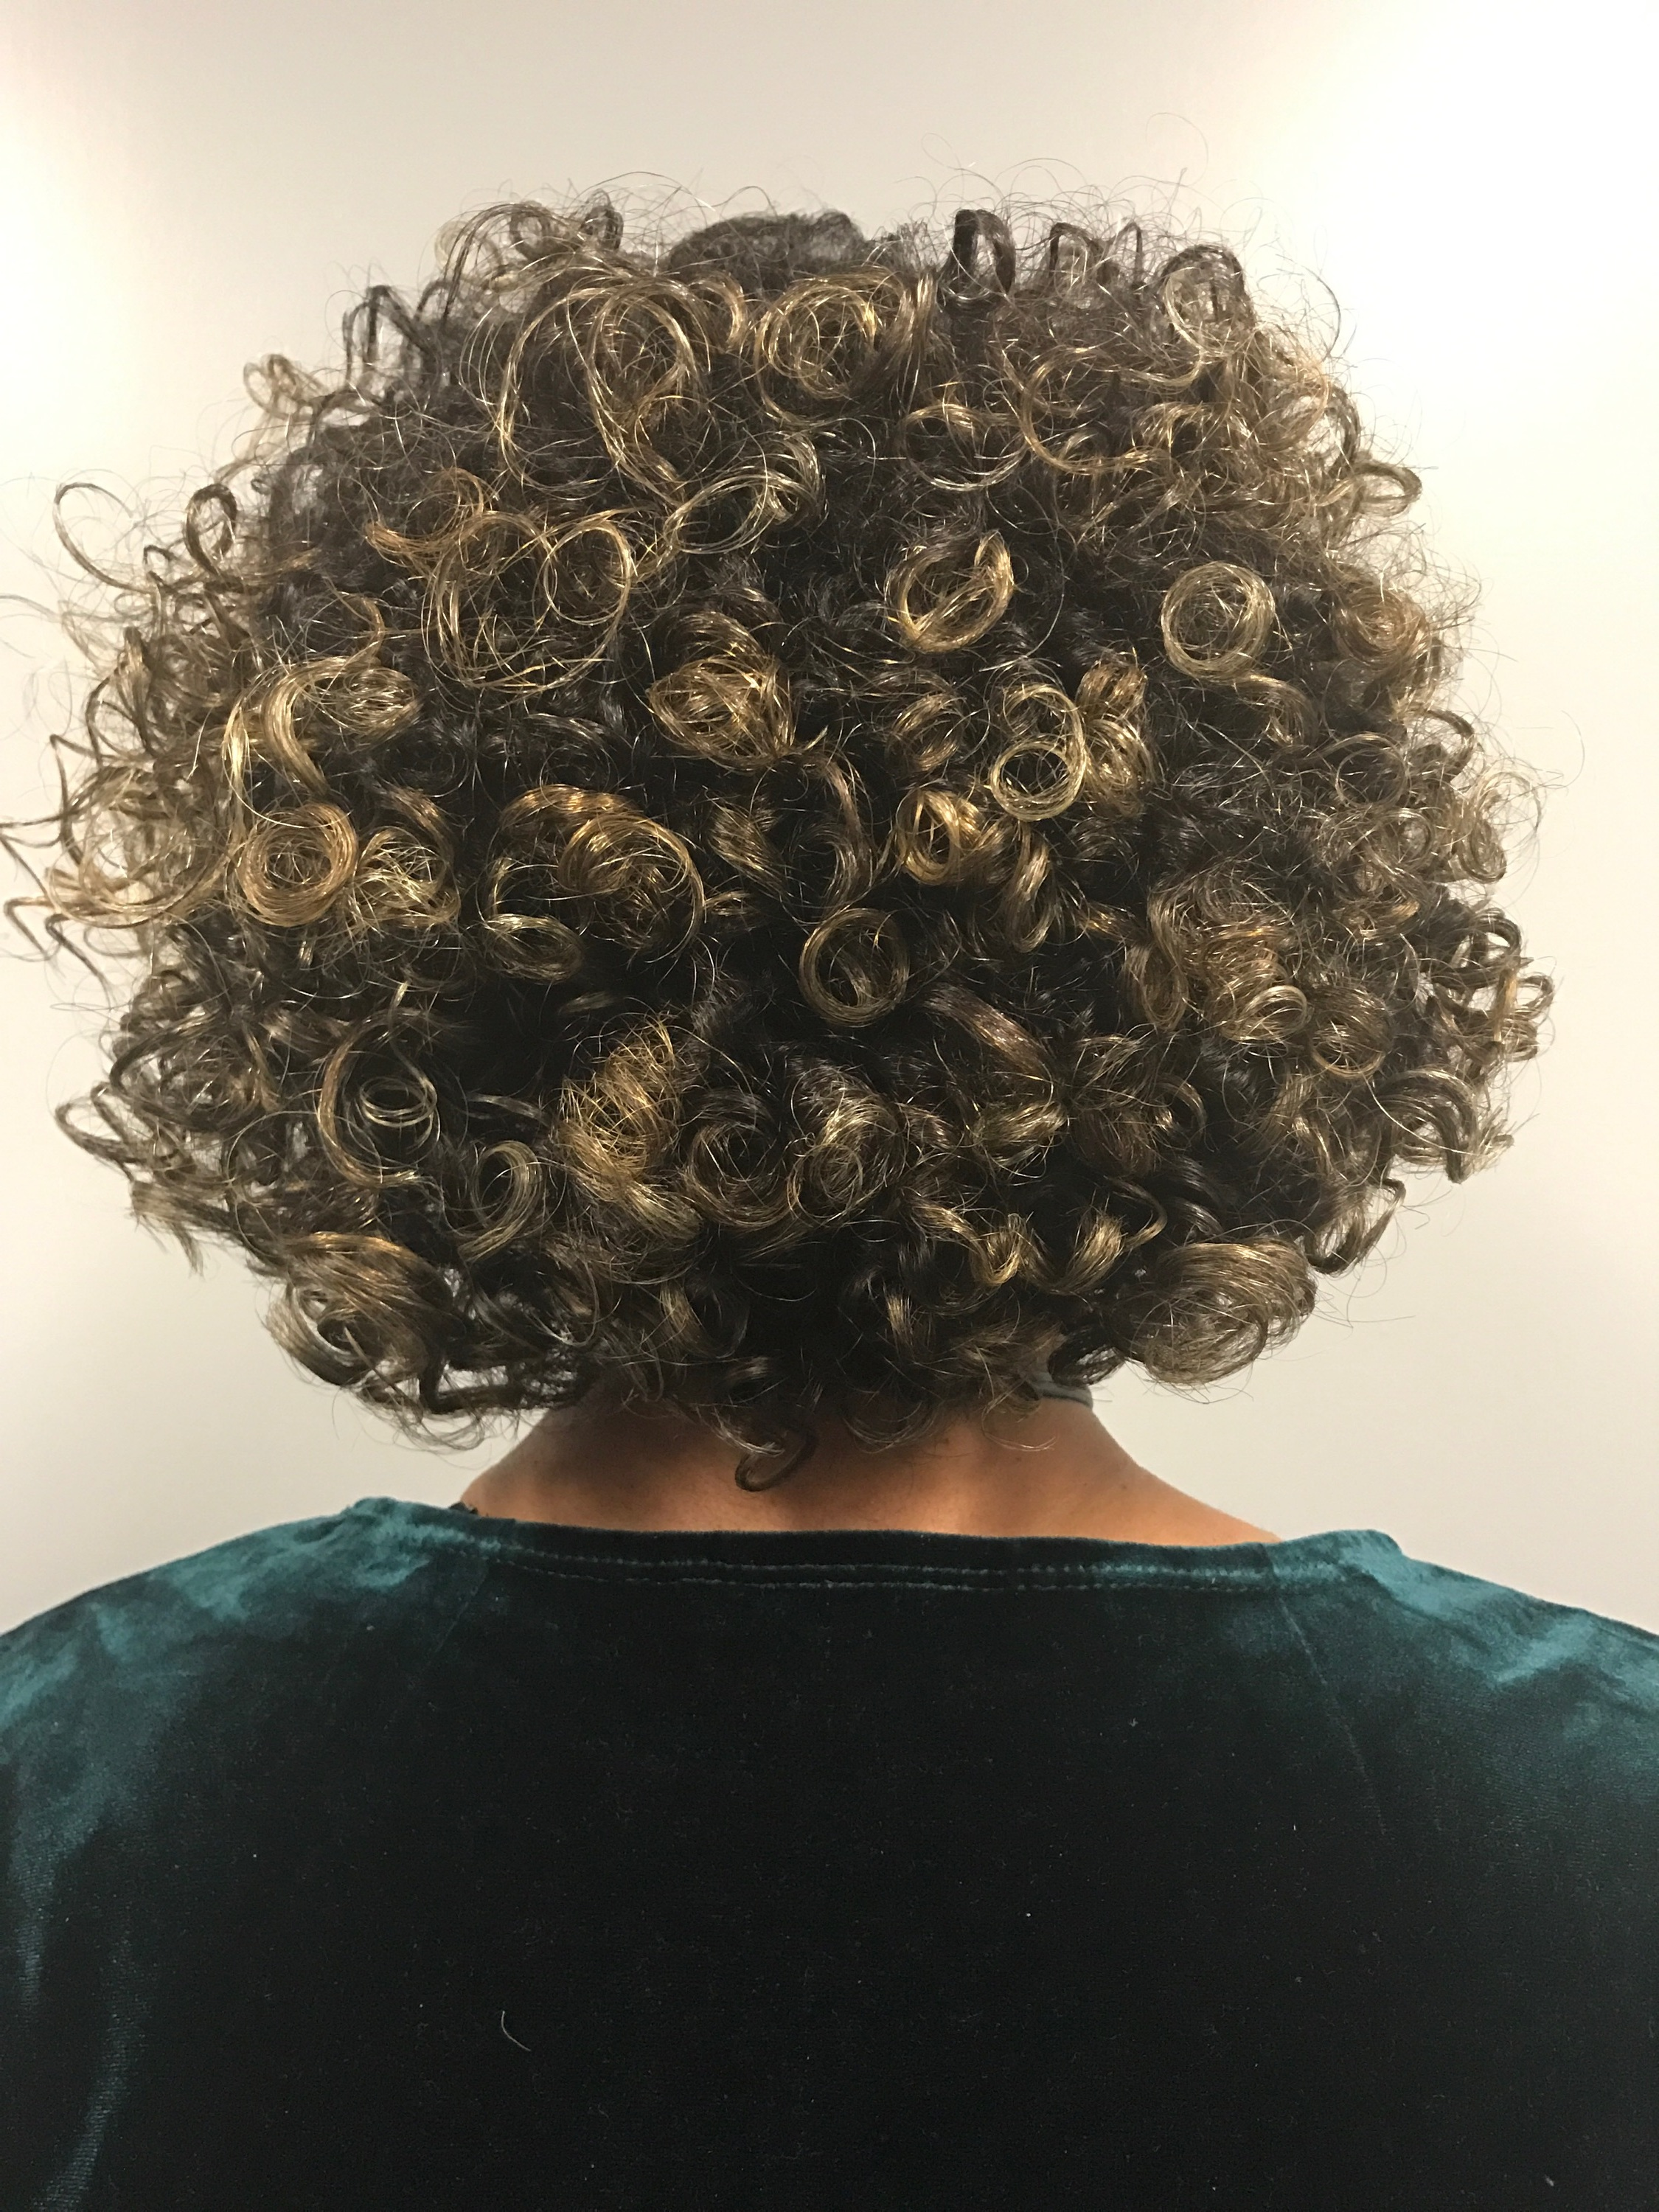 During my time with Rimmy she cut off my heat damage ends, shaped my curls and styled my hair.